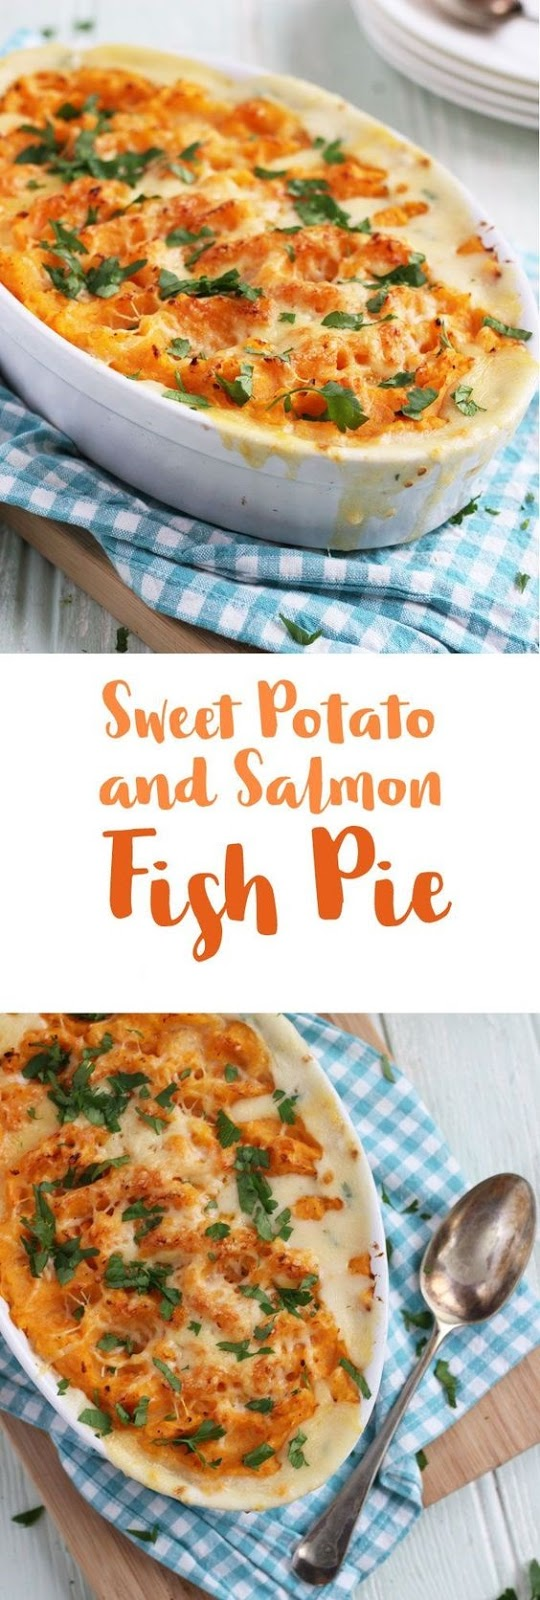 SWEET POTATO FISH PIE WITH SALMON #Food #Vegetarian #vegetarianrecipes #vegetarianrecipeshealthy #vegetarian meals #vegetarianchili #vegetarianmealprep #vegetarianrecipesdinner #vegetarianrecipesdinnereasy #vegetarianrecipeshighprotein #easyrecipes #recipes #CookbookRecipesEasy #HealtyRecipes #fishrecipes  #moquecabrazilian #fish stew #foodRecipes #foodburgers #fooddrinkrecipeS #Cooker #masonjar #healthy #recipes #greatist #vegetarian #breakfast #brunch  #legumes #chicken #casseroles #tortilla #homemade #popularrcipes #poultry #delicious #pastafoodrecipes  #Easy #Spices #ChopSuey #Soup #Classic #gingerbread #ginger #cake #classic #baking #dessert #recipes #christmas #dessertrecipes #Vegetarian #Food #Fish #Dessert #Lunch #Dinner #SnackRecipes #BeefRecipes #DrinkRecipes #CookbookRecipesEasy #HealthyRecipes #AllRecipes #ChickenRecipes #CookiesRecipes #ріzzа #pizzarecipe #vеgеtаrіаn #vegetarianrecipes #vеggіеѕ #vеgеtаblеѕ #grееnріzzа #vеggіеріzzа #feta #pesto #artichokes #brоссоlіSаvе   #recipesfordinner #recipesfordinnereasy #recipeswithgroundbeef  #recipeseasy #recipesfordinnerhealth #AngeliqueRecipes #RecipeLion #Recipe  #RecipesFromTheBlog #RecipesyouMUST #RecipesfromourFavoriteBloggers #BuzzFeed #Tasty #BuzzFeed #Tasty #rice #ricerecipes #chicken #dinner #dinnerrecipes #easydinner #friedrice #veggiespeas #broccoli #cauliflower #vegies,  #vegetables  #dinnerrecipes #dinnerideas #dinner #dinnerrecipeseasy #dinnerrecipesforfamily #TheDinnerMom #DinnerthenDessert #DinnerattheZoo #QuickandEasyRecipes #DinnerattheZooRecipes #DINNERRecipes #DinnerRecipesSimpleMeals #foodrecipes #fooddinner #Healthandmanymore #FoodWine #Cakes #Lifestyle #Food #FoodandFancies #FoodBloggers entralSHARINGBoard